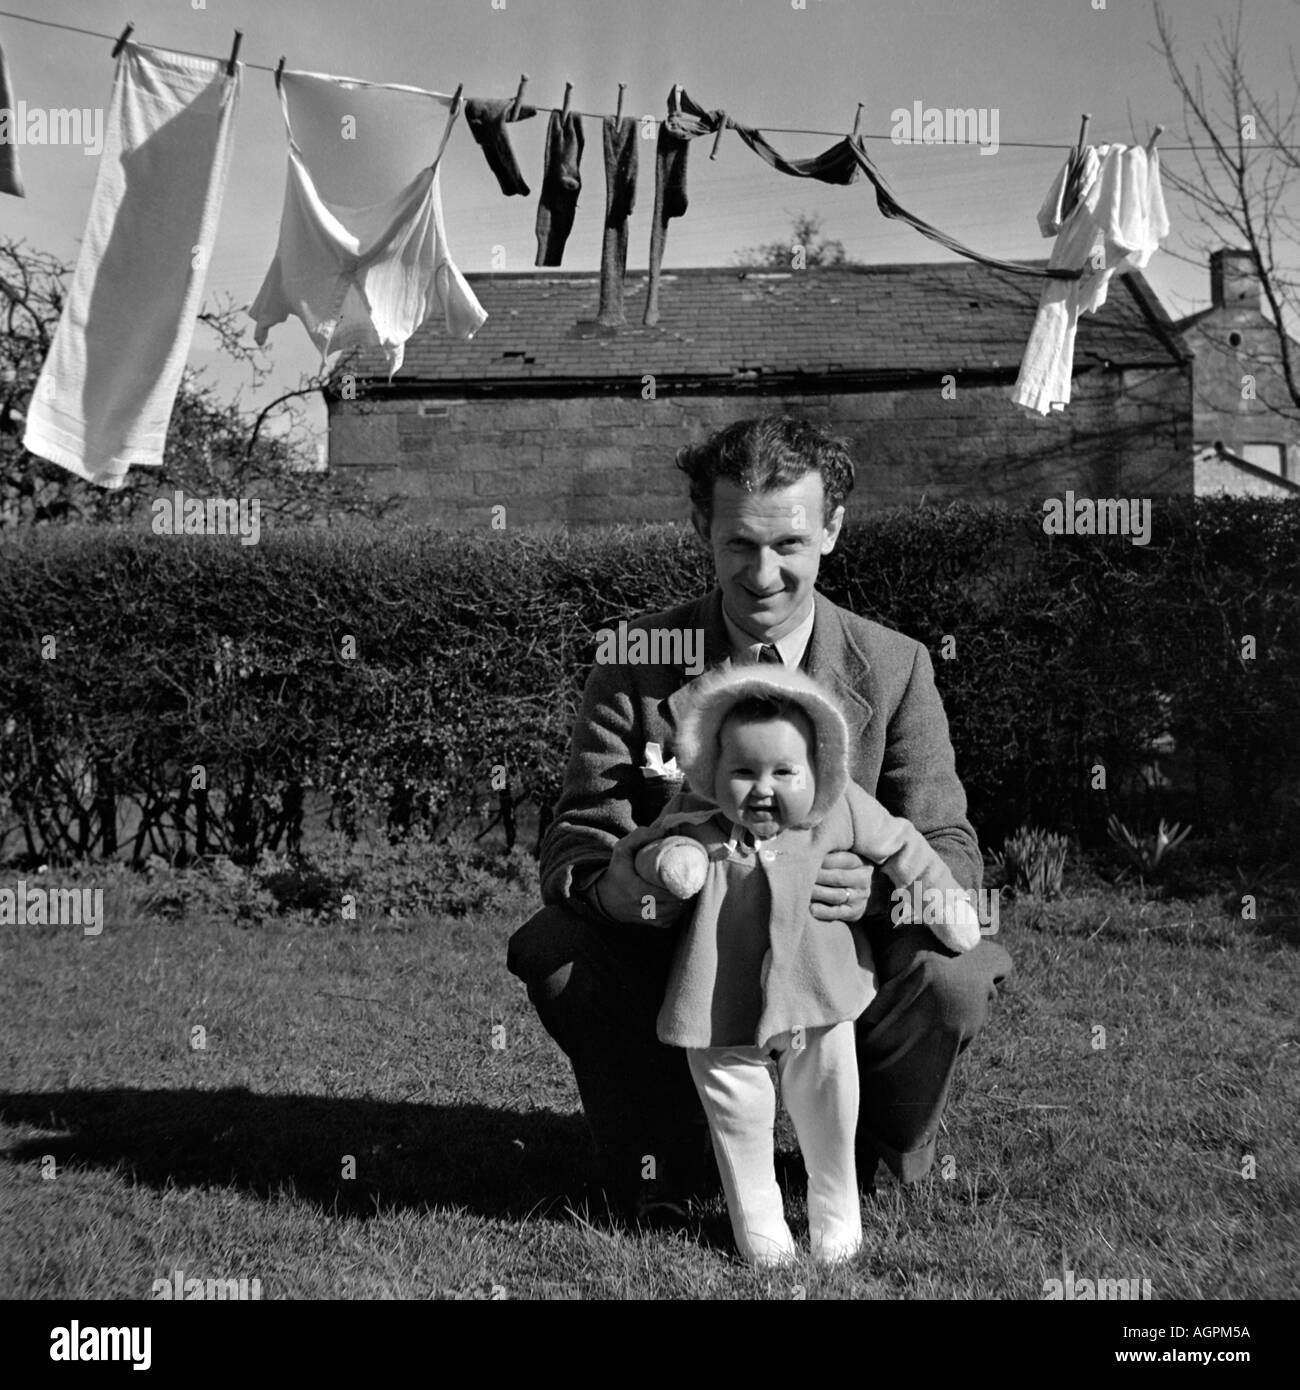 OLD VINTAGE FAMILY SNAPSHOT PHOTOGRAPH OF FATHER PLAYING WITH BABY DAUGHTER IN GARDEN OF HOME WITH WASHING LINE IN BACKGROUND CI - Stock Image